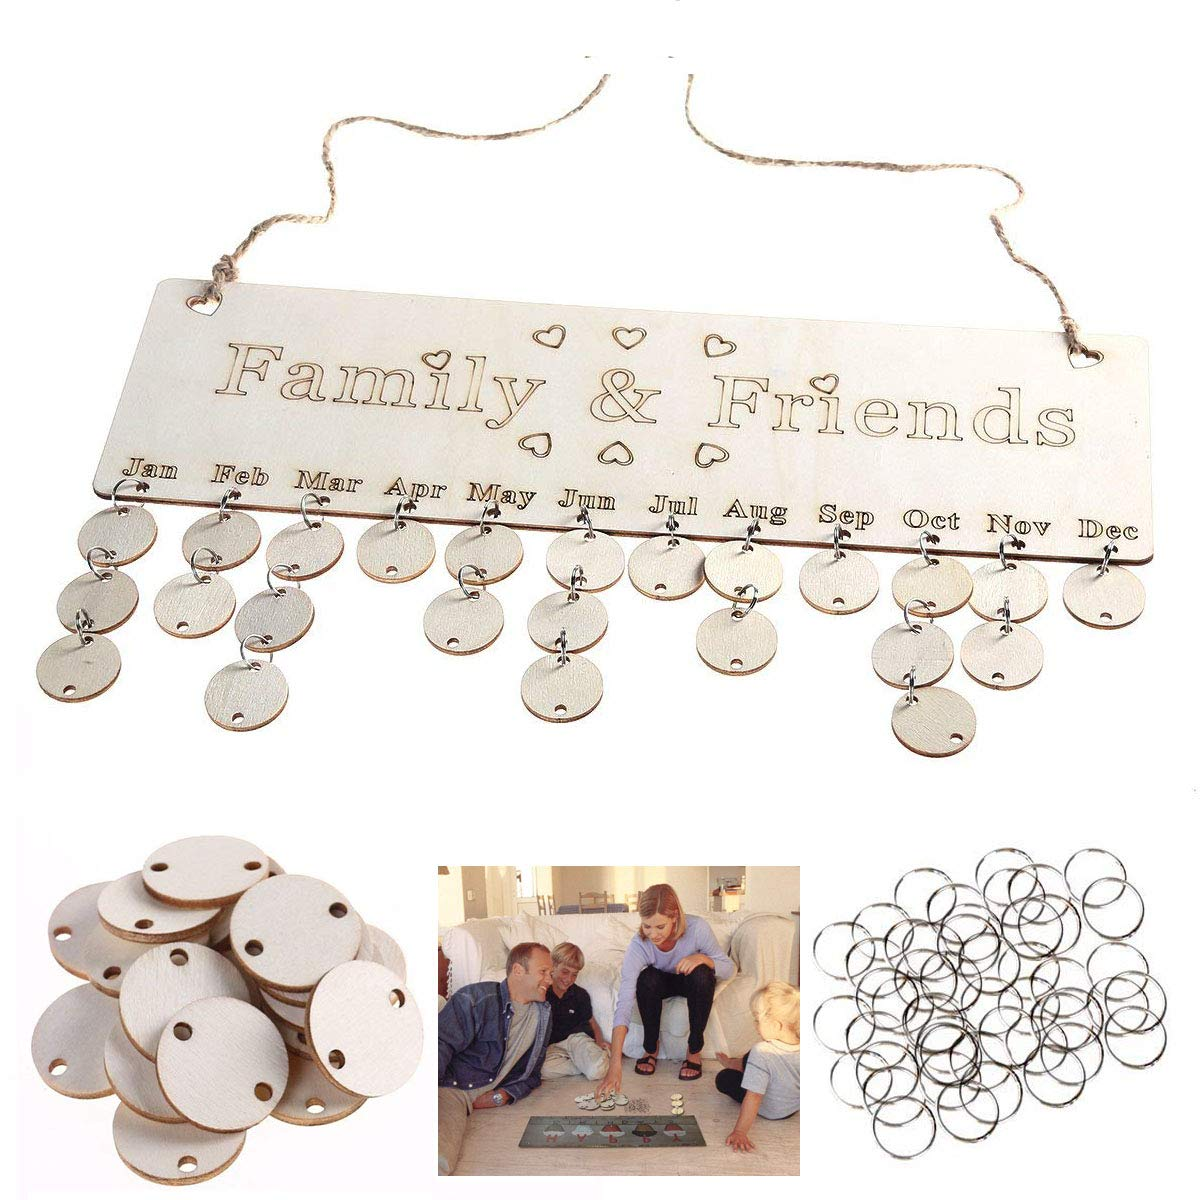 Dproptel DIY Family & Friends Hanging Calendar Wooden Board Birthday Reminder Plaque Home Decor for Birthday & Events Reminder Decorative Wooden Wall Calendar and Keep Track of Other Important Dates (White-Wooden) Dproptel Direct